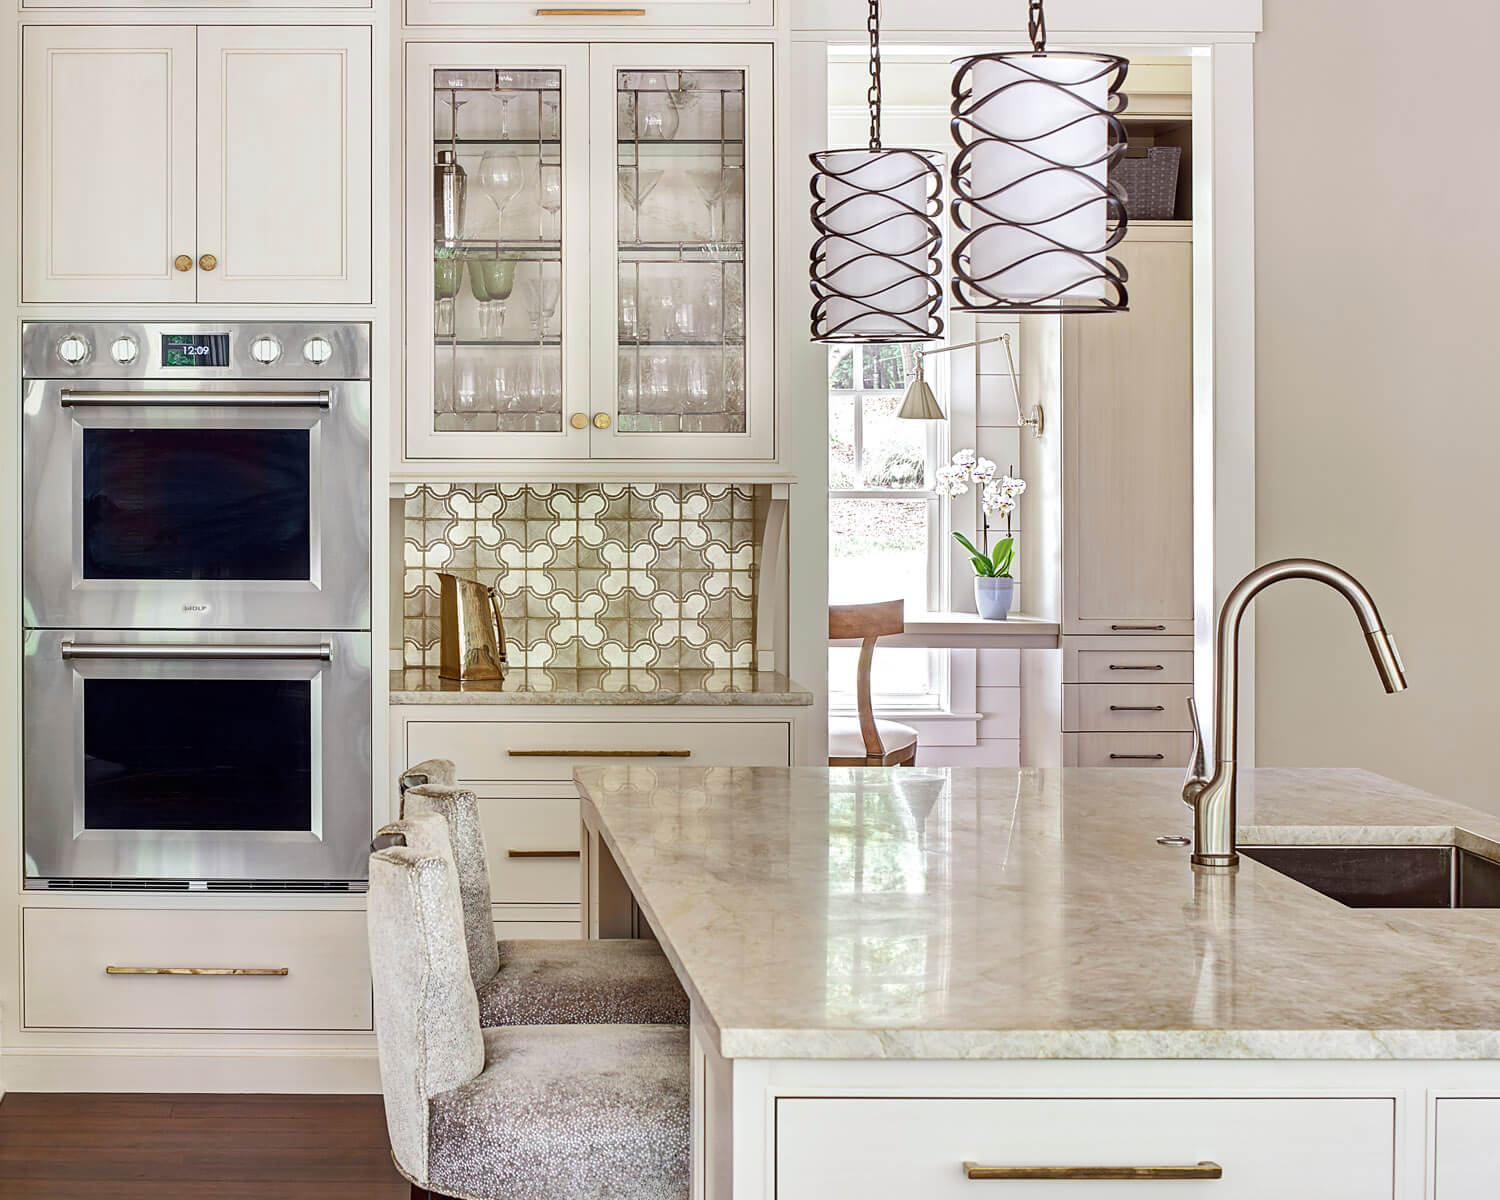 Design Your Forever Home With Custom Cabinetry Inspired By You And Your Style